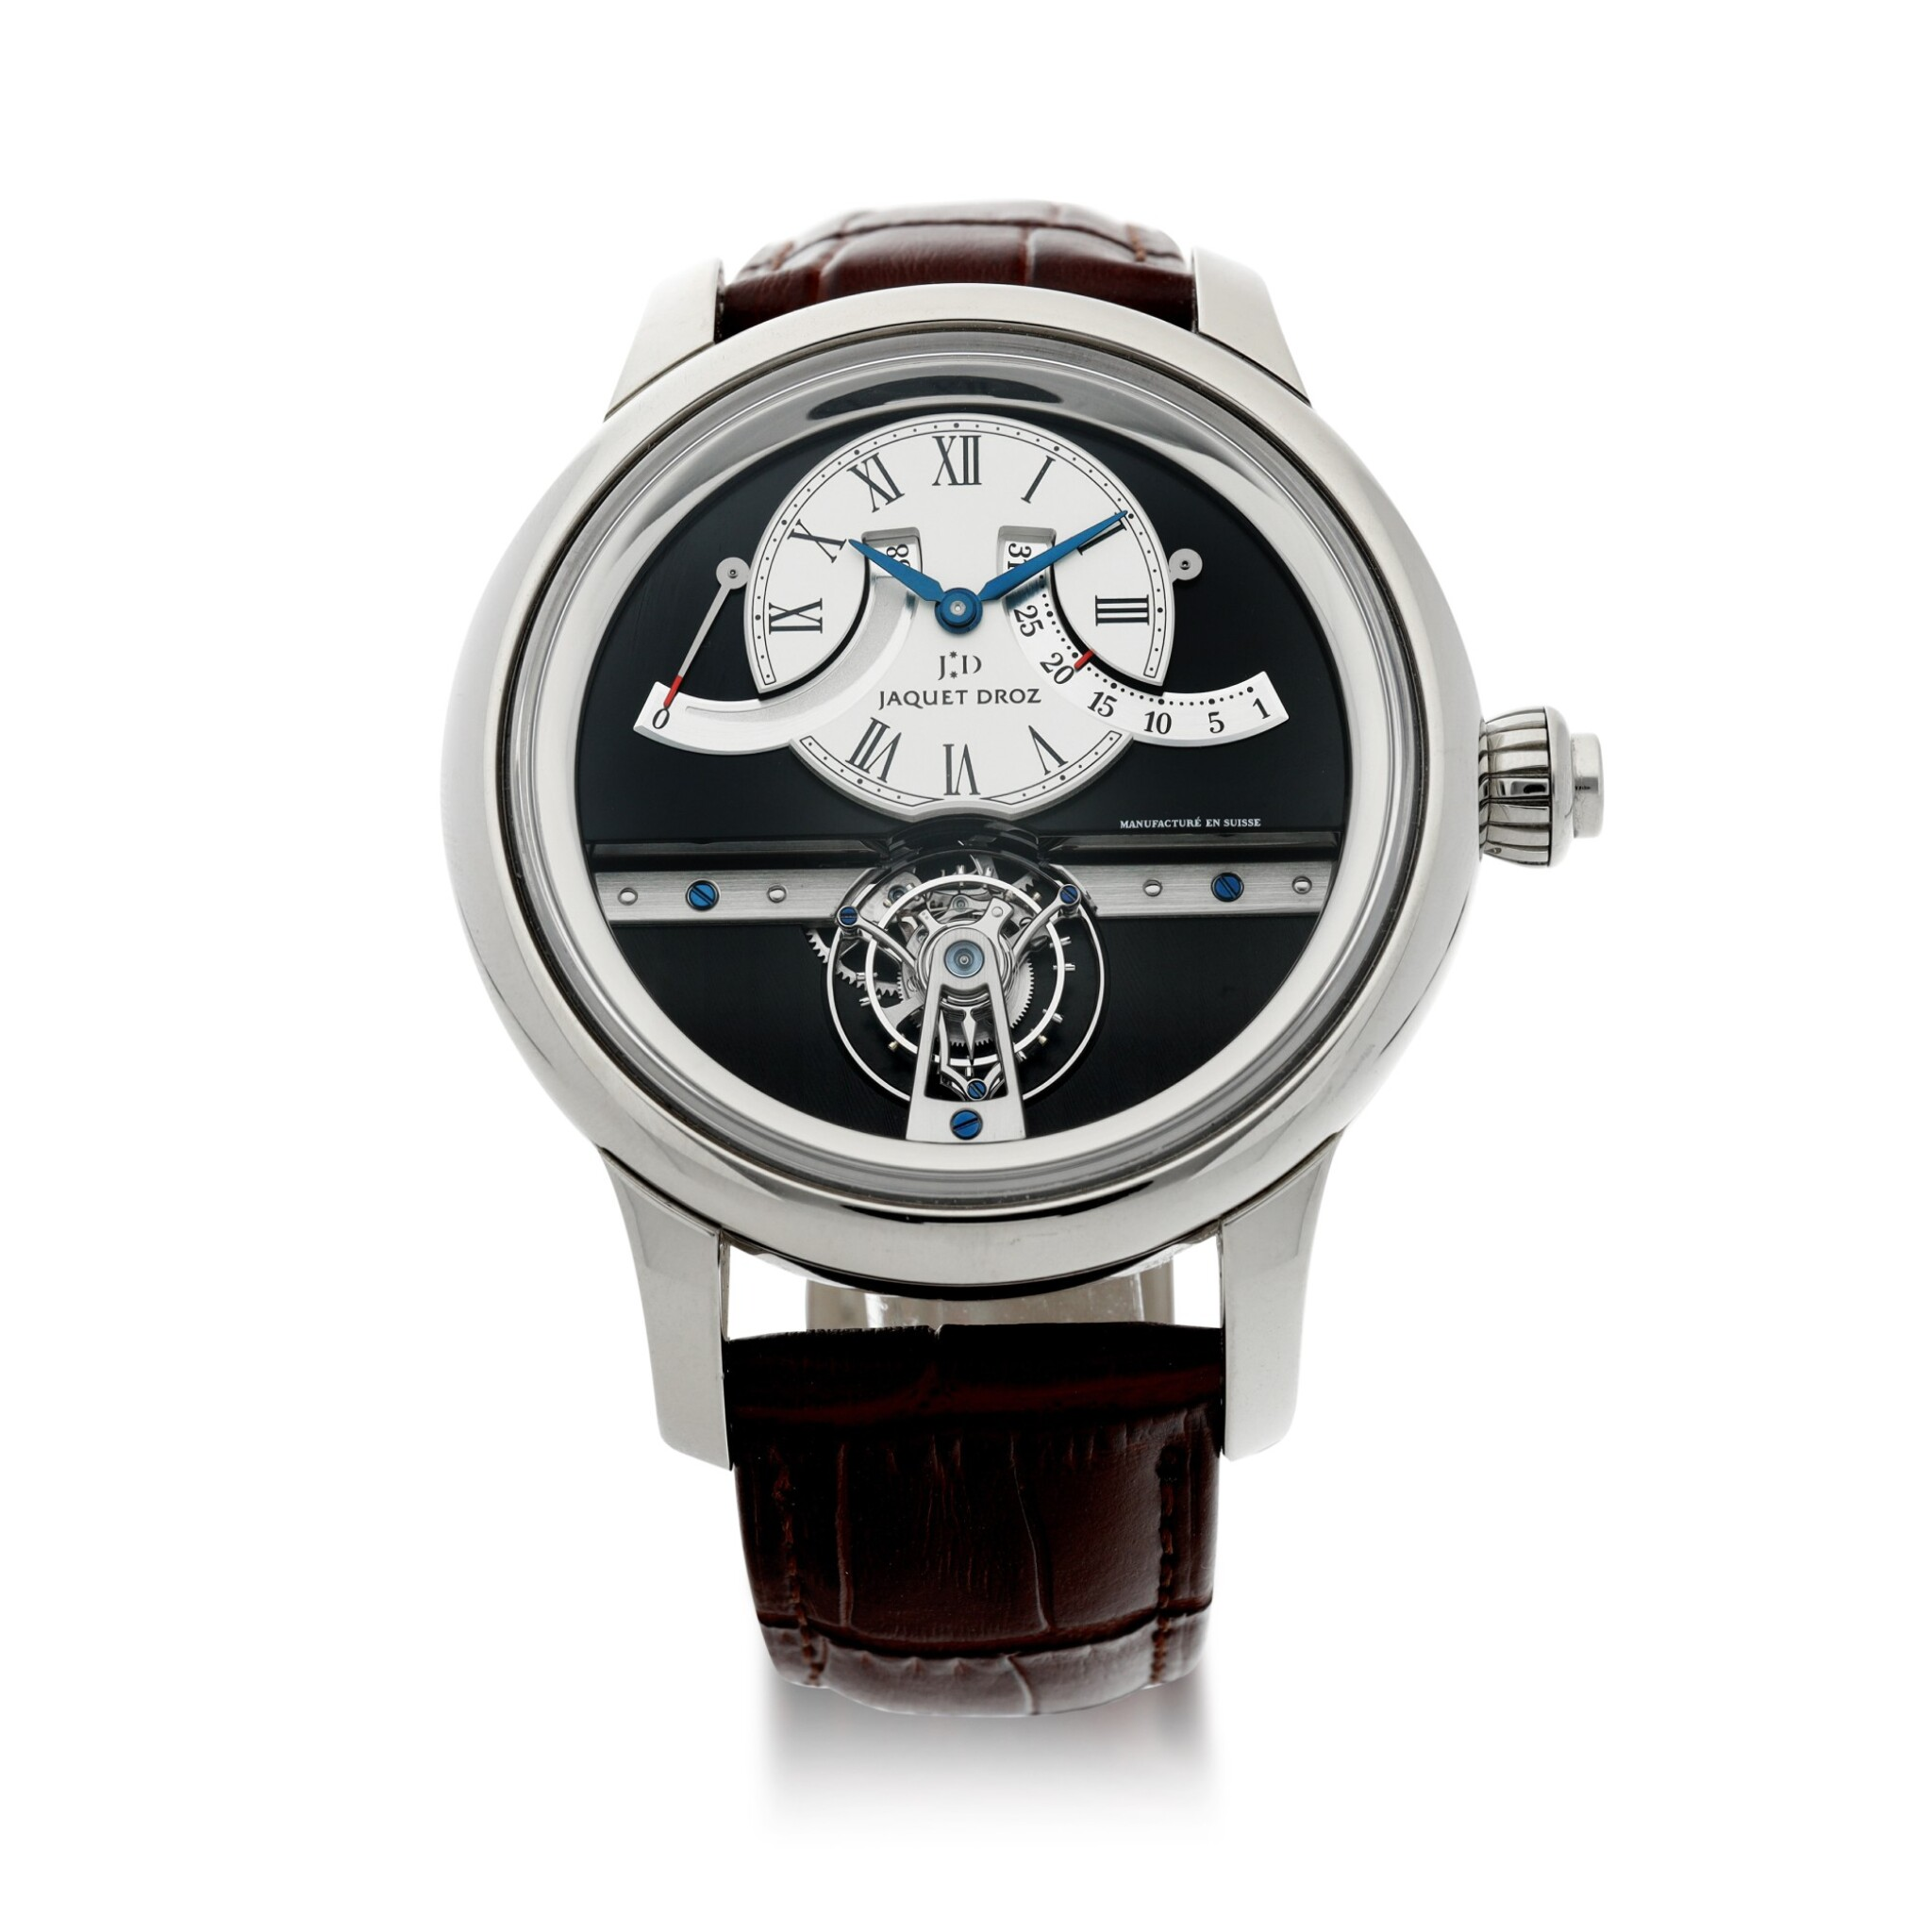 View full screen - View 1 of Lot 183. REFERENCE J028034201 GRANDE SECONDE TOURBILLON A LIMITED EDITION WHITE GOLD TOURBILLON WRISTWATCH WITH RETROGRADE DATE AND POWER RESERVE INDICATION, MADE IN 2009.